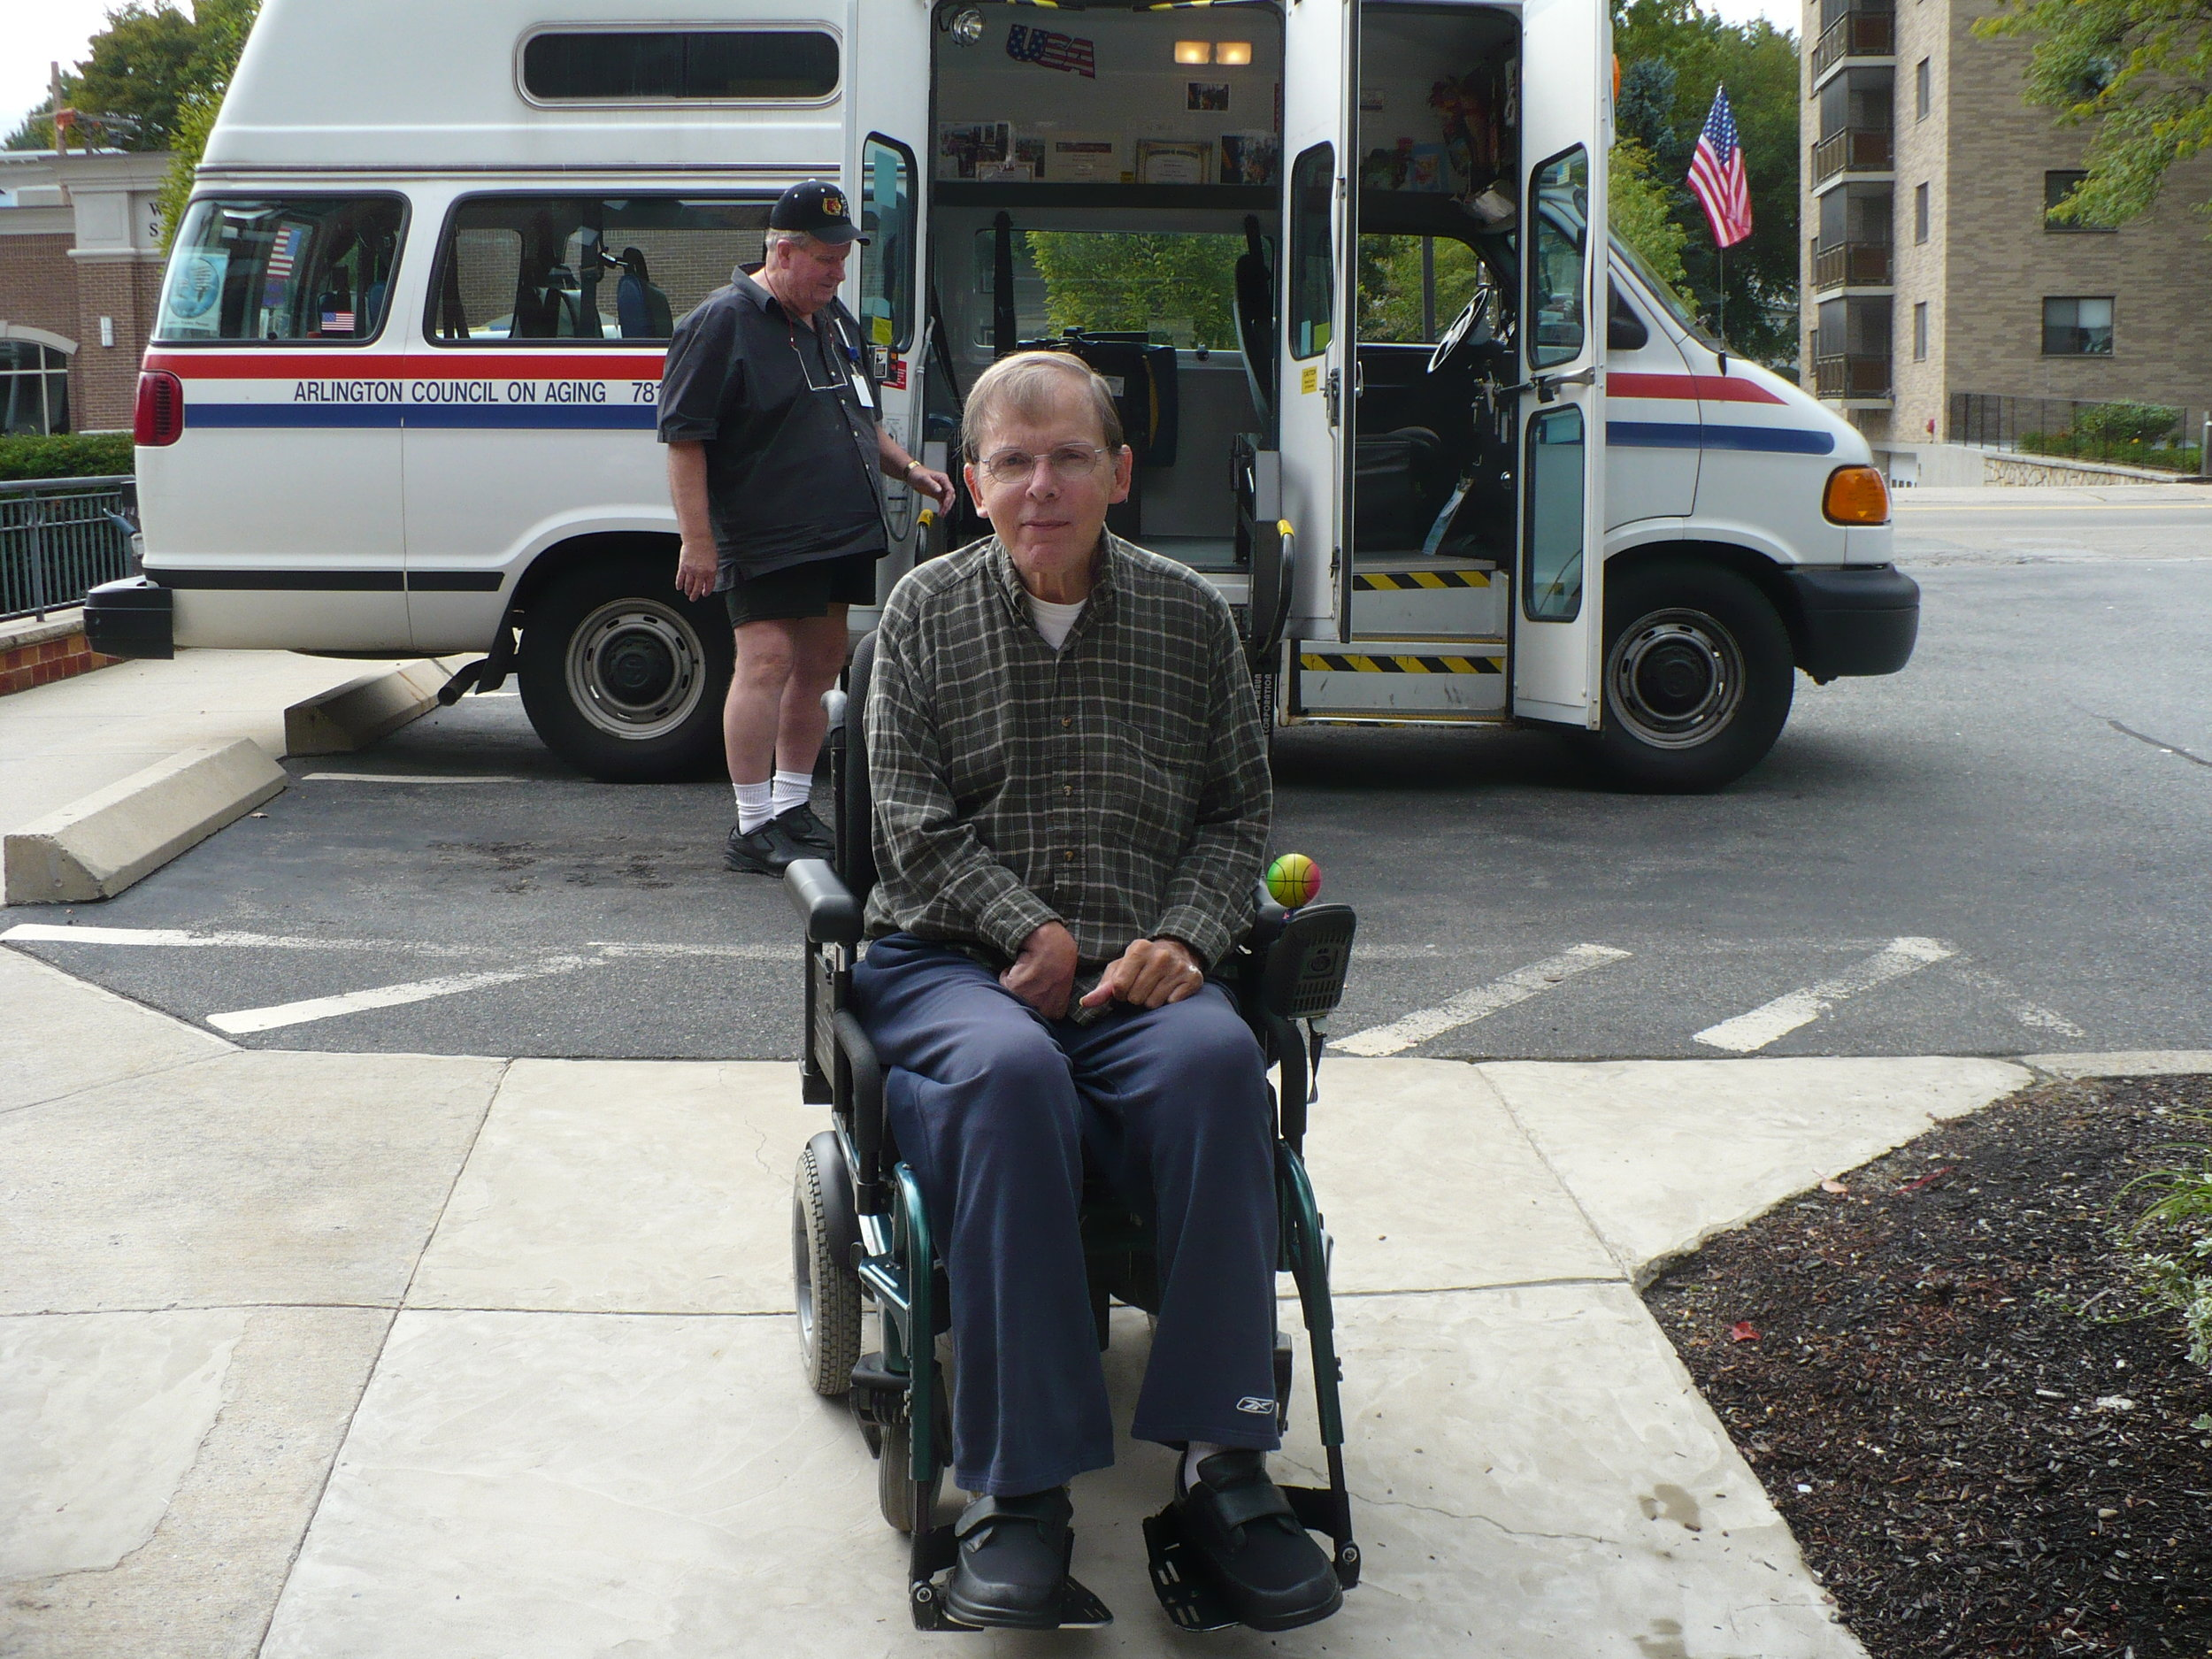 A case management client uses his transportation resources to get out into the community